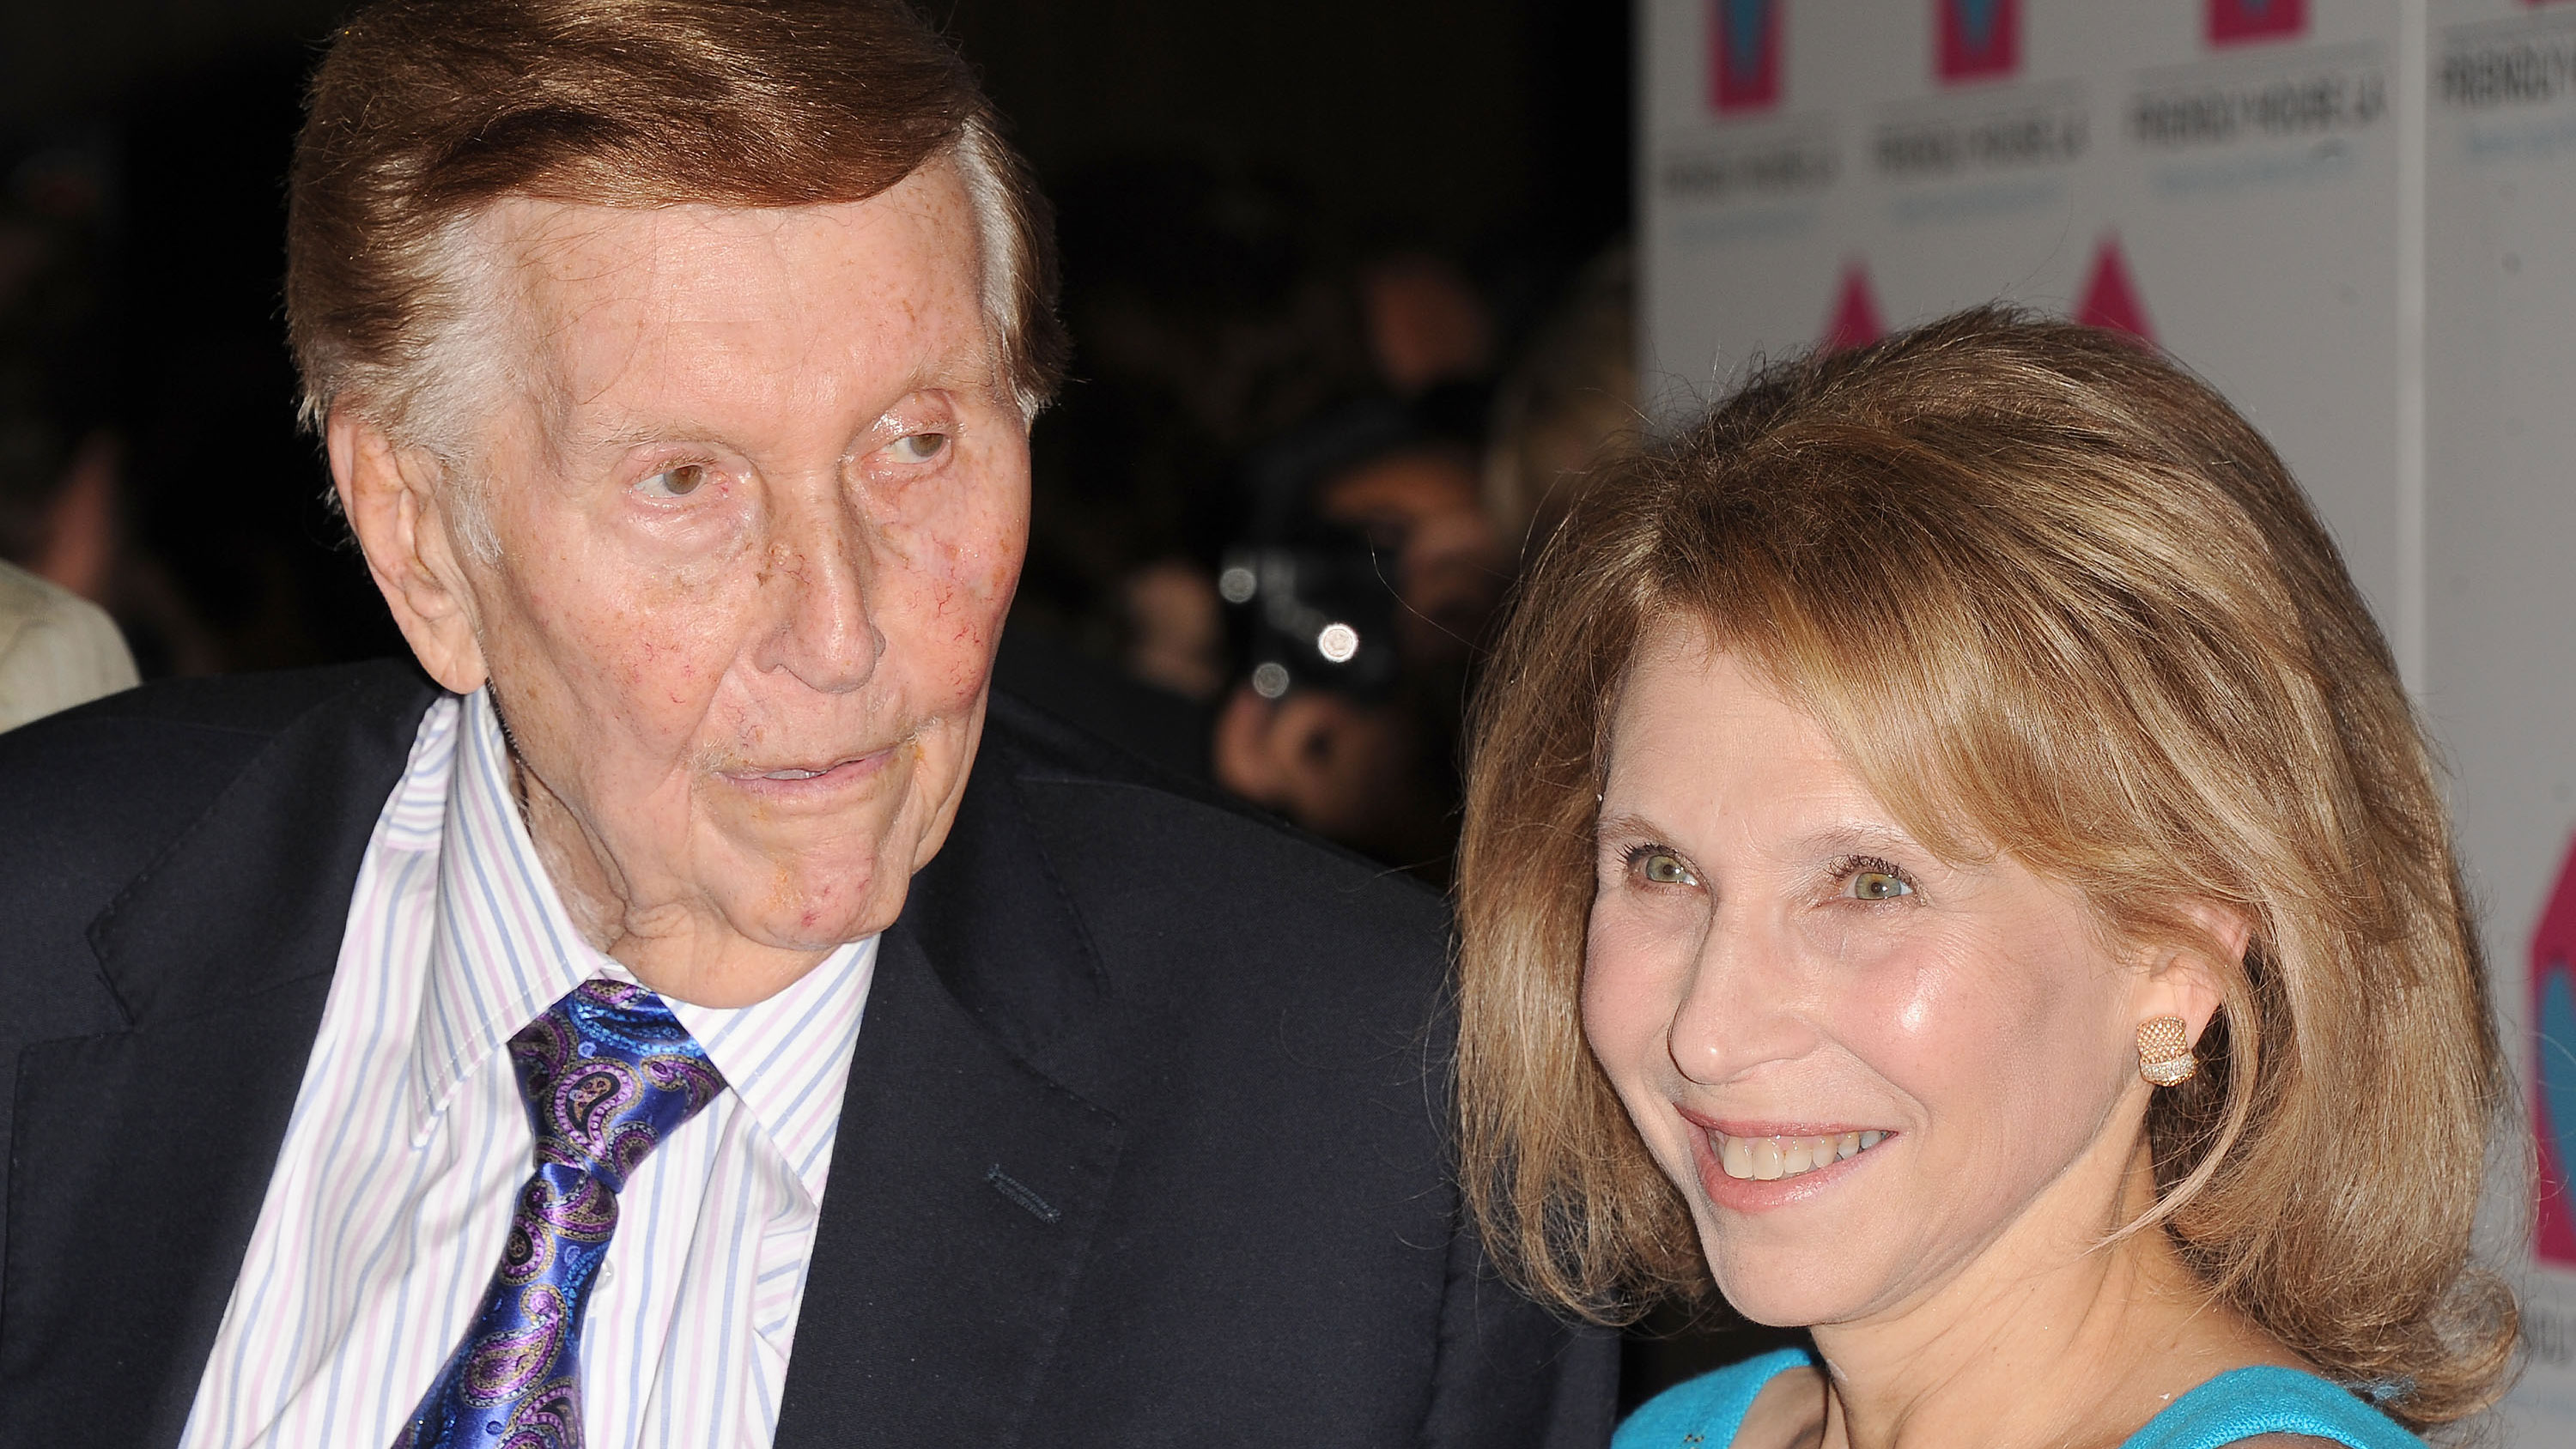 Sumner Redstone, at left, and Shari Ellin Redstone is seen at the LA Friendly House Luncheon on Saturday, Oct. 27, 2012 in Beverly Hills, Calif. ( Photo by Katy Winn/Invision for LA Friendly House/AP Images)